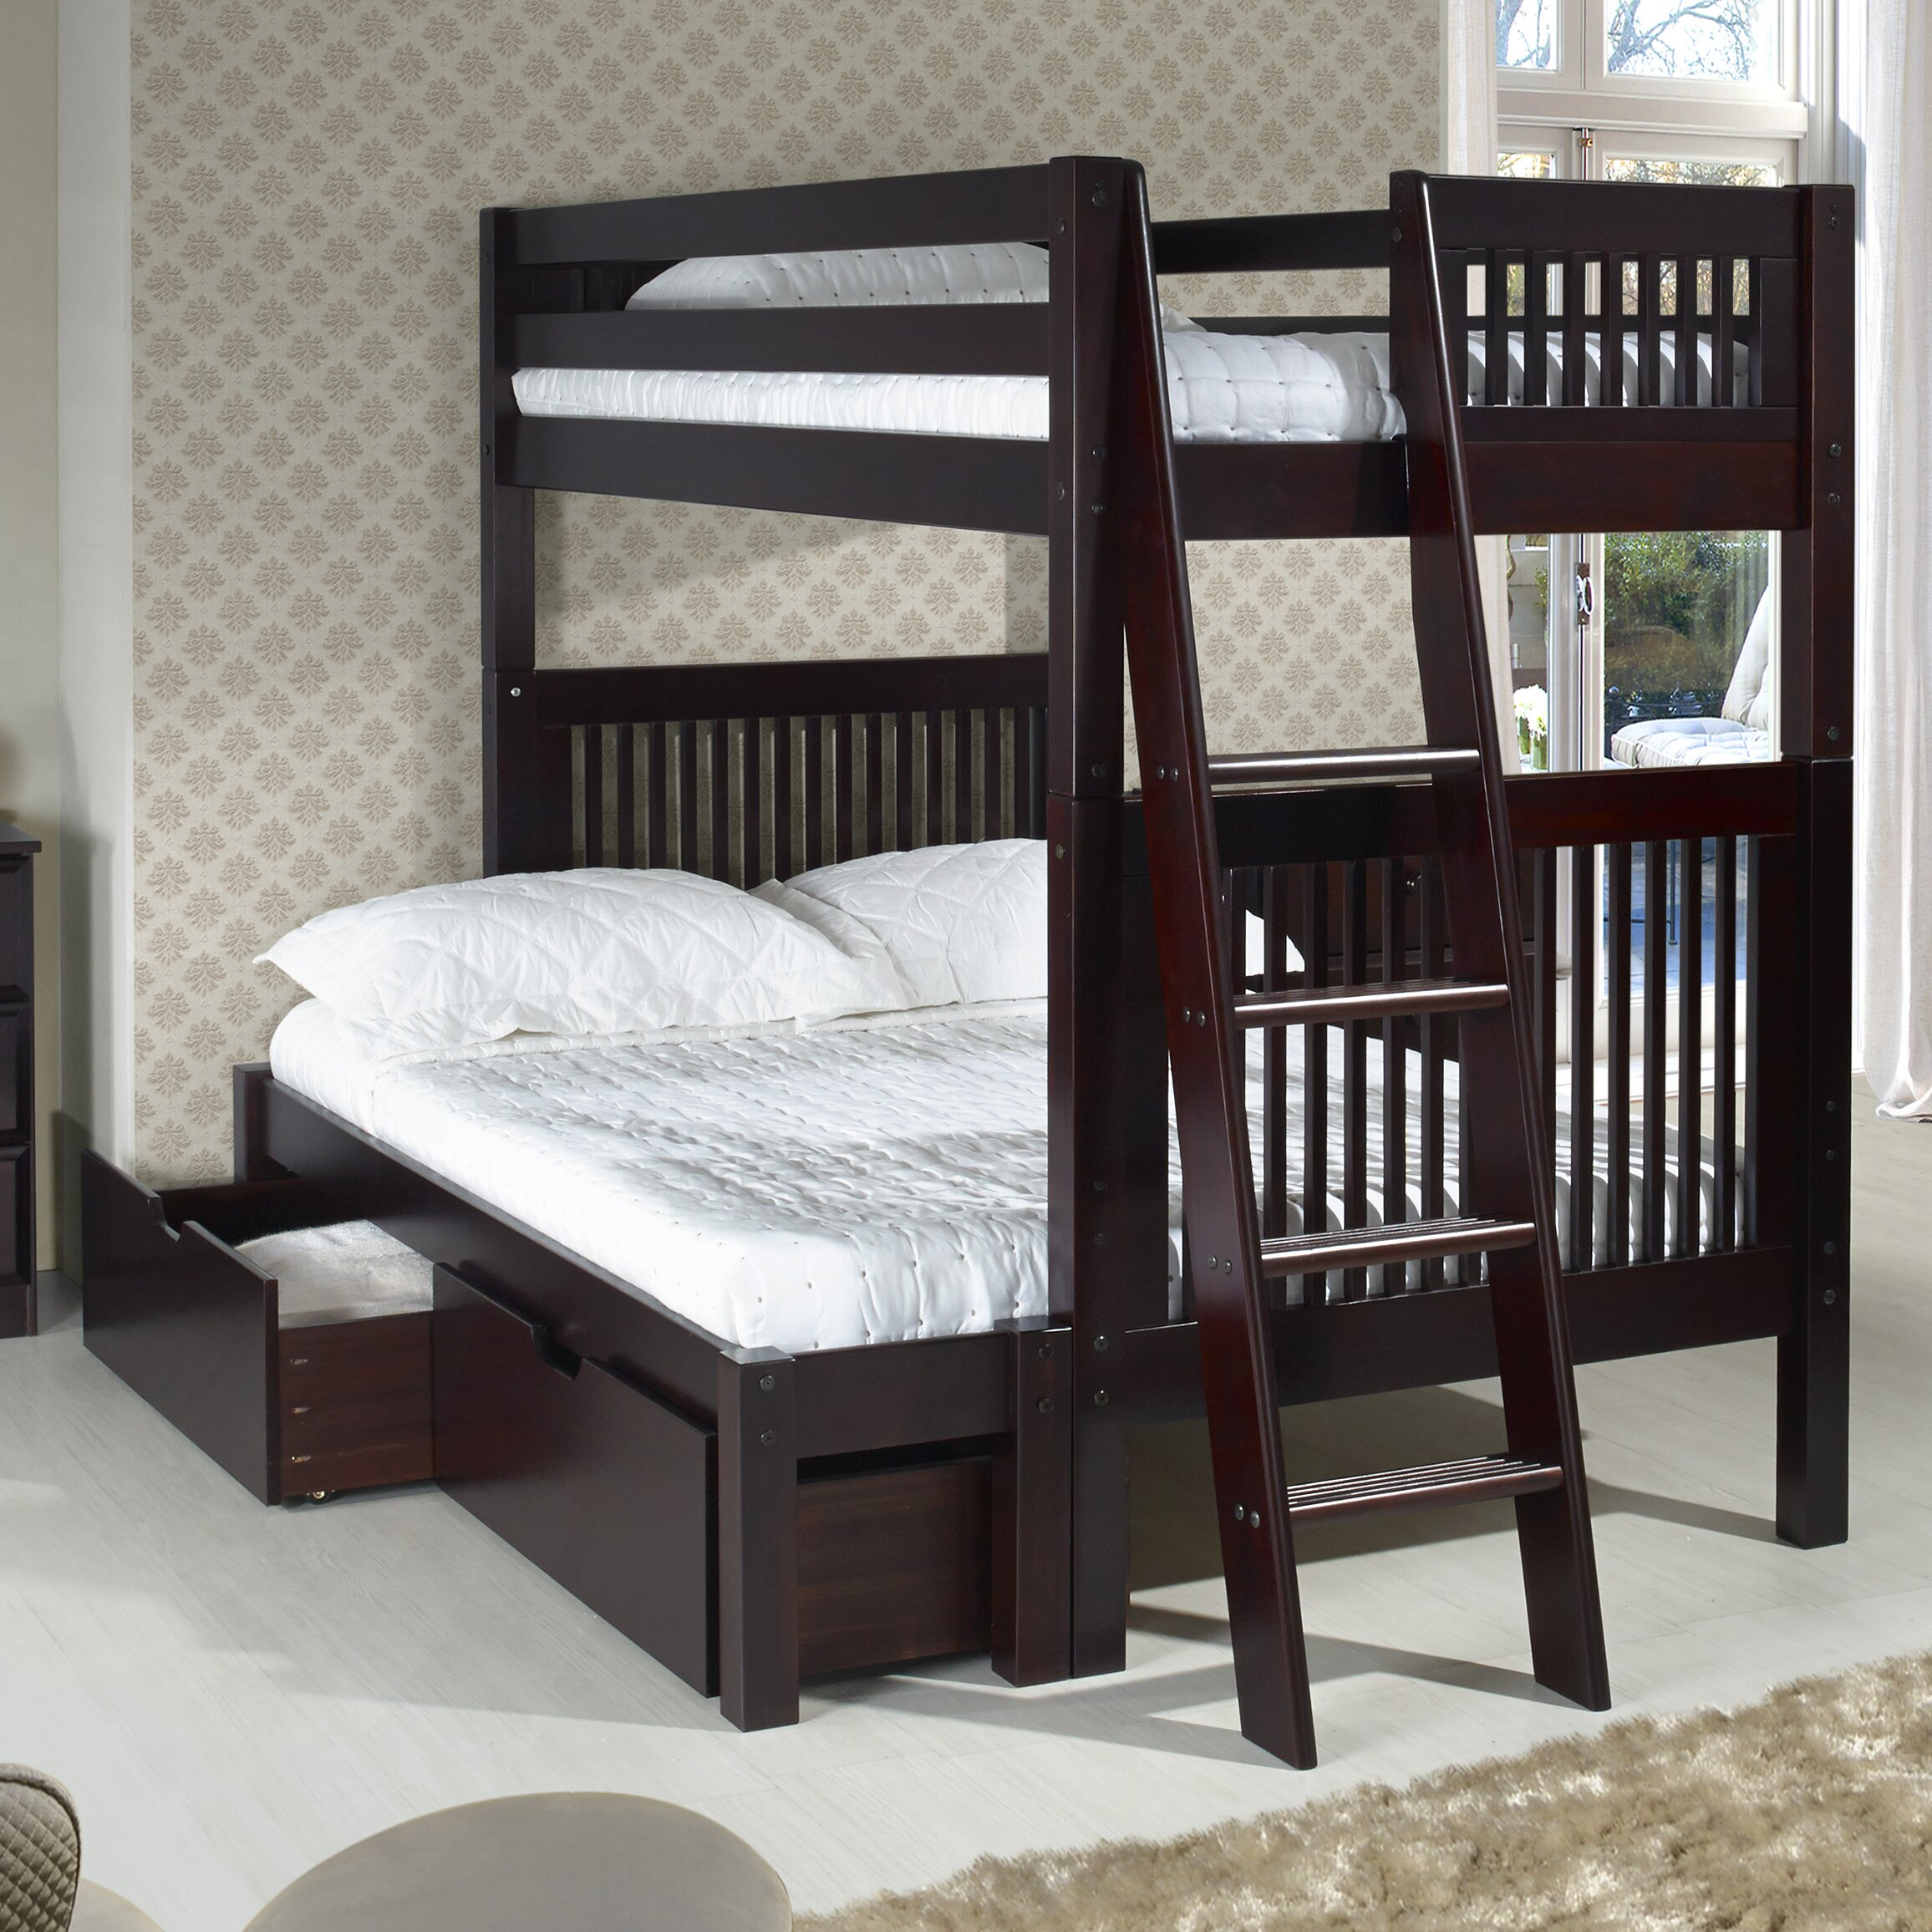 camaflexi twin over full bunk bed with storage. Black Bedroom Furniture Sets. Home Design Ideas